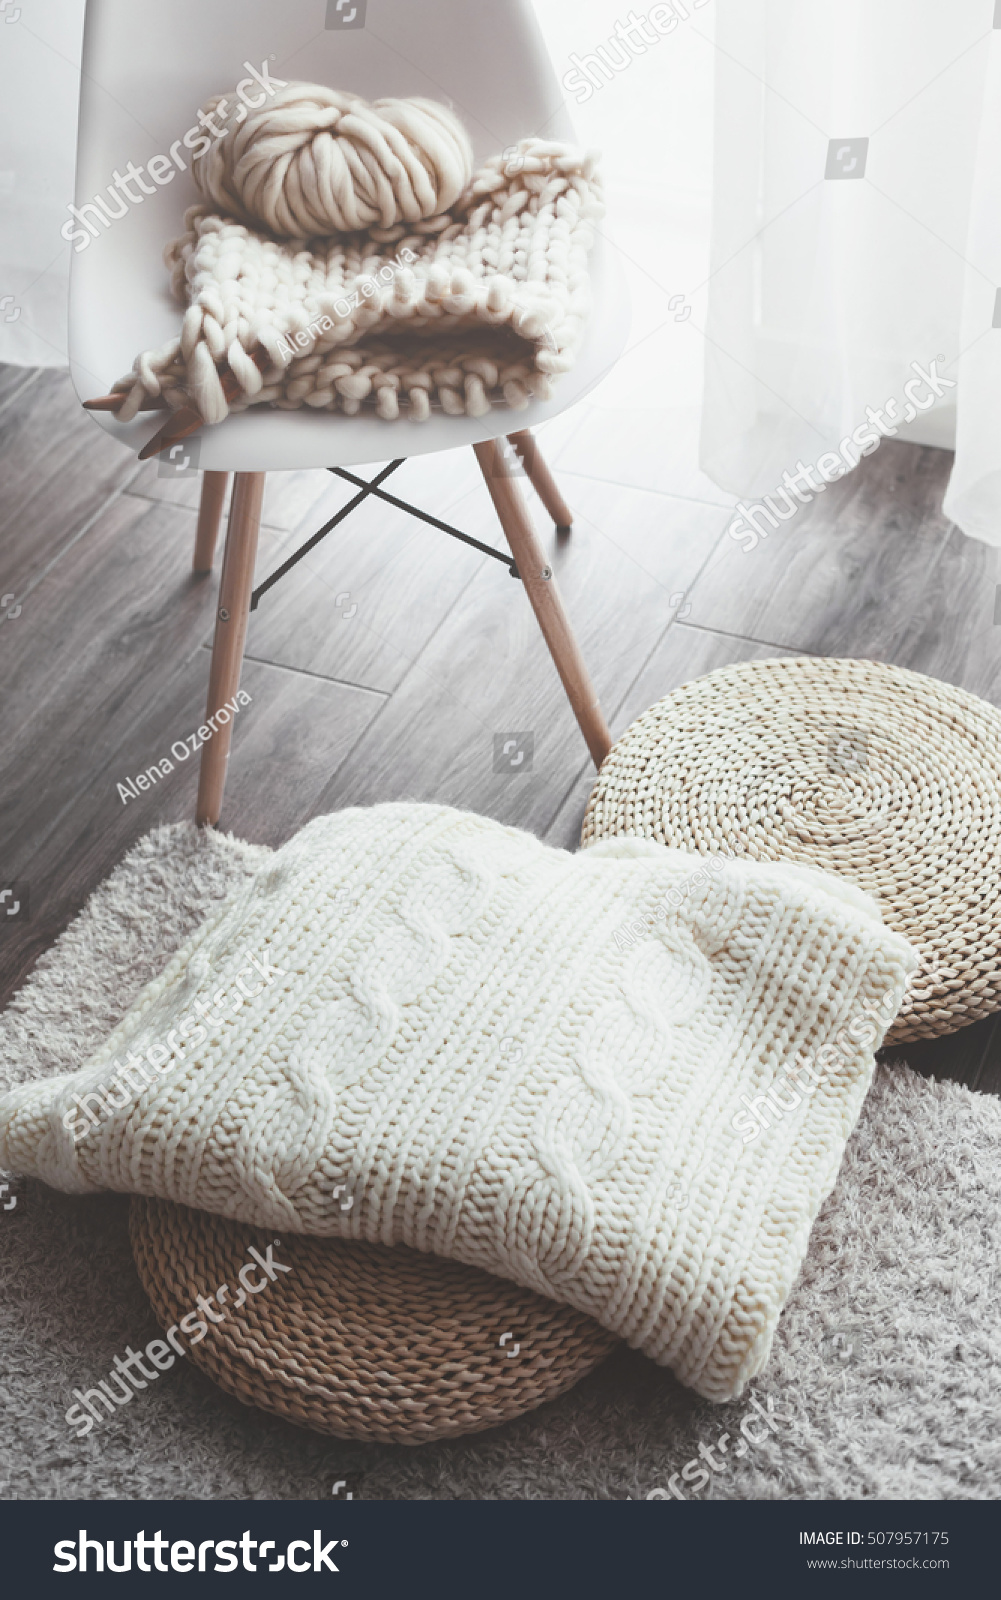 Knitted Blanket On Wicker Ottoman Modern Stock Photo ...